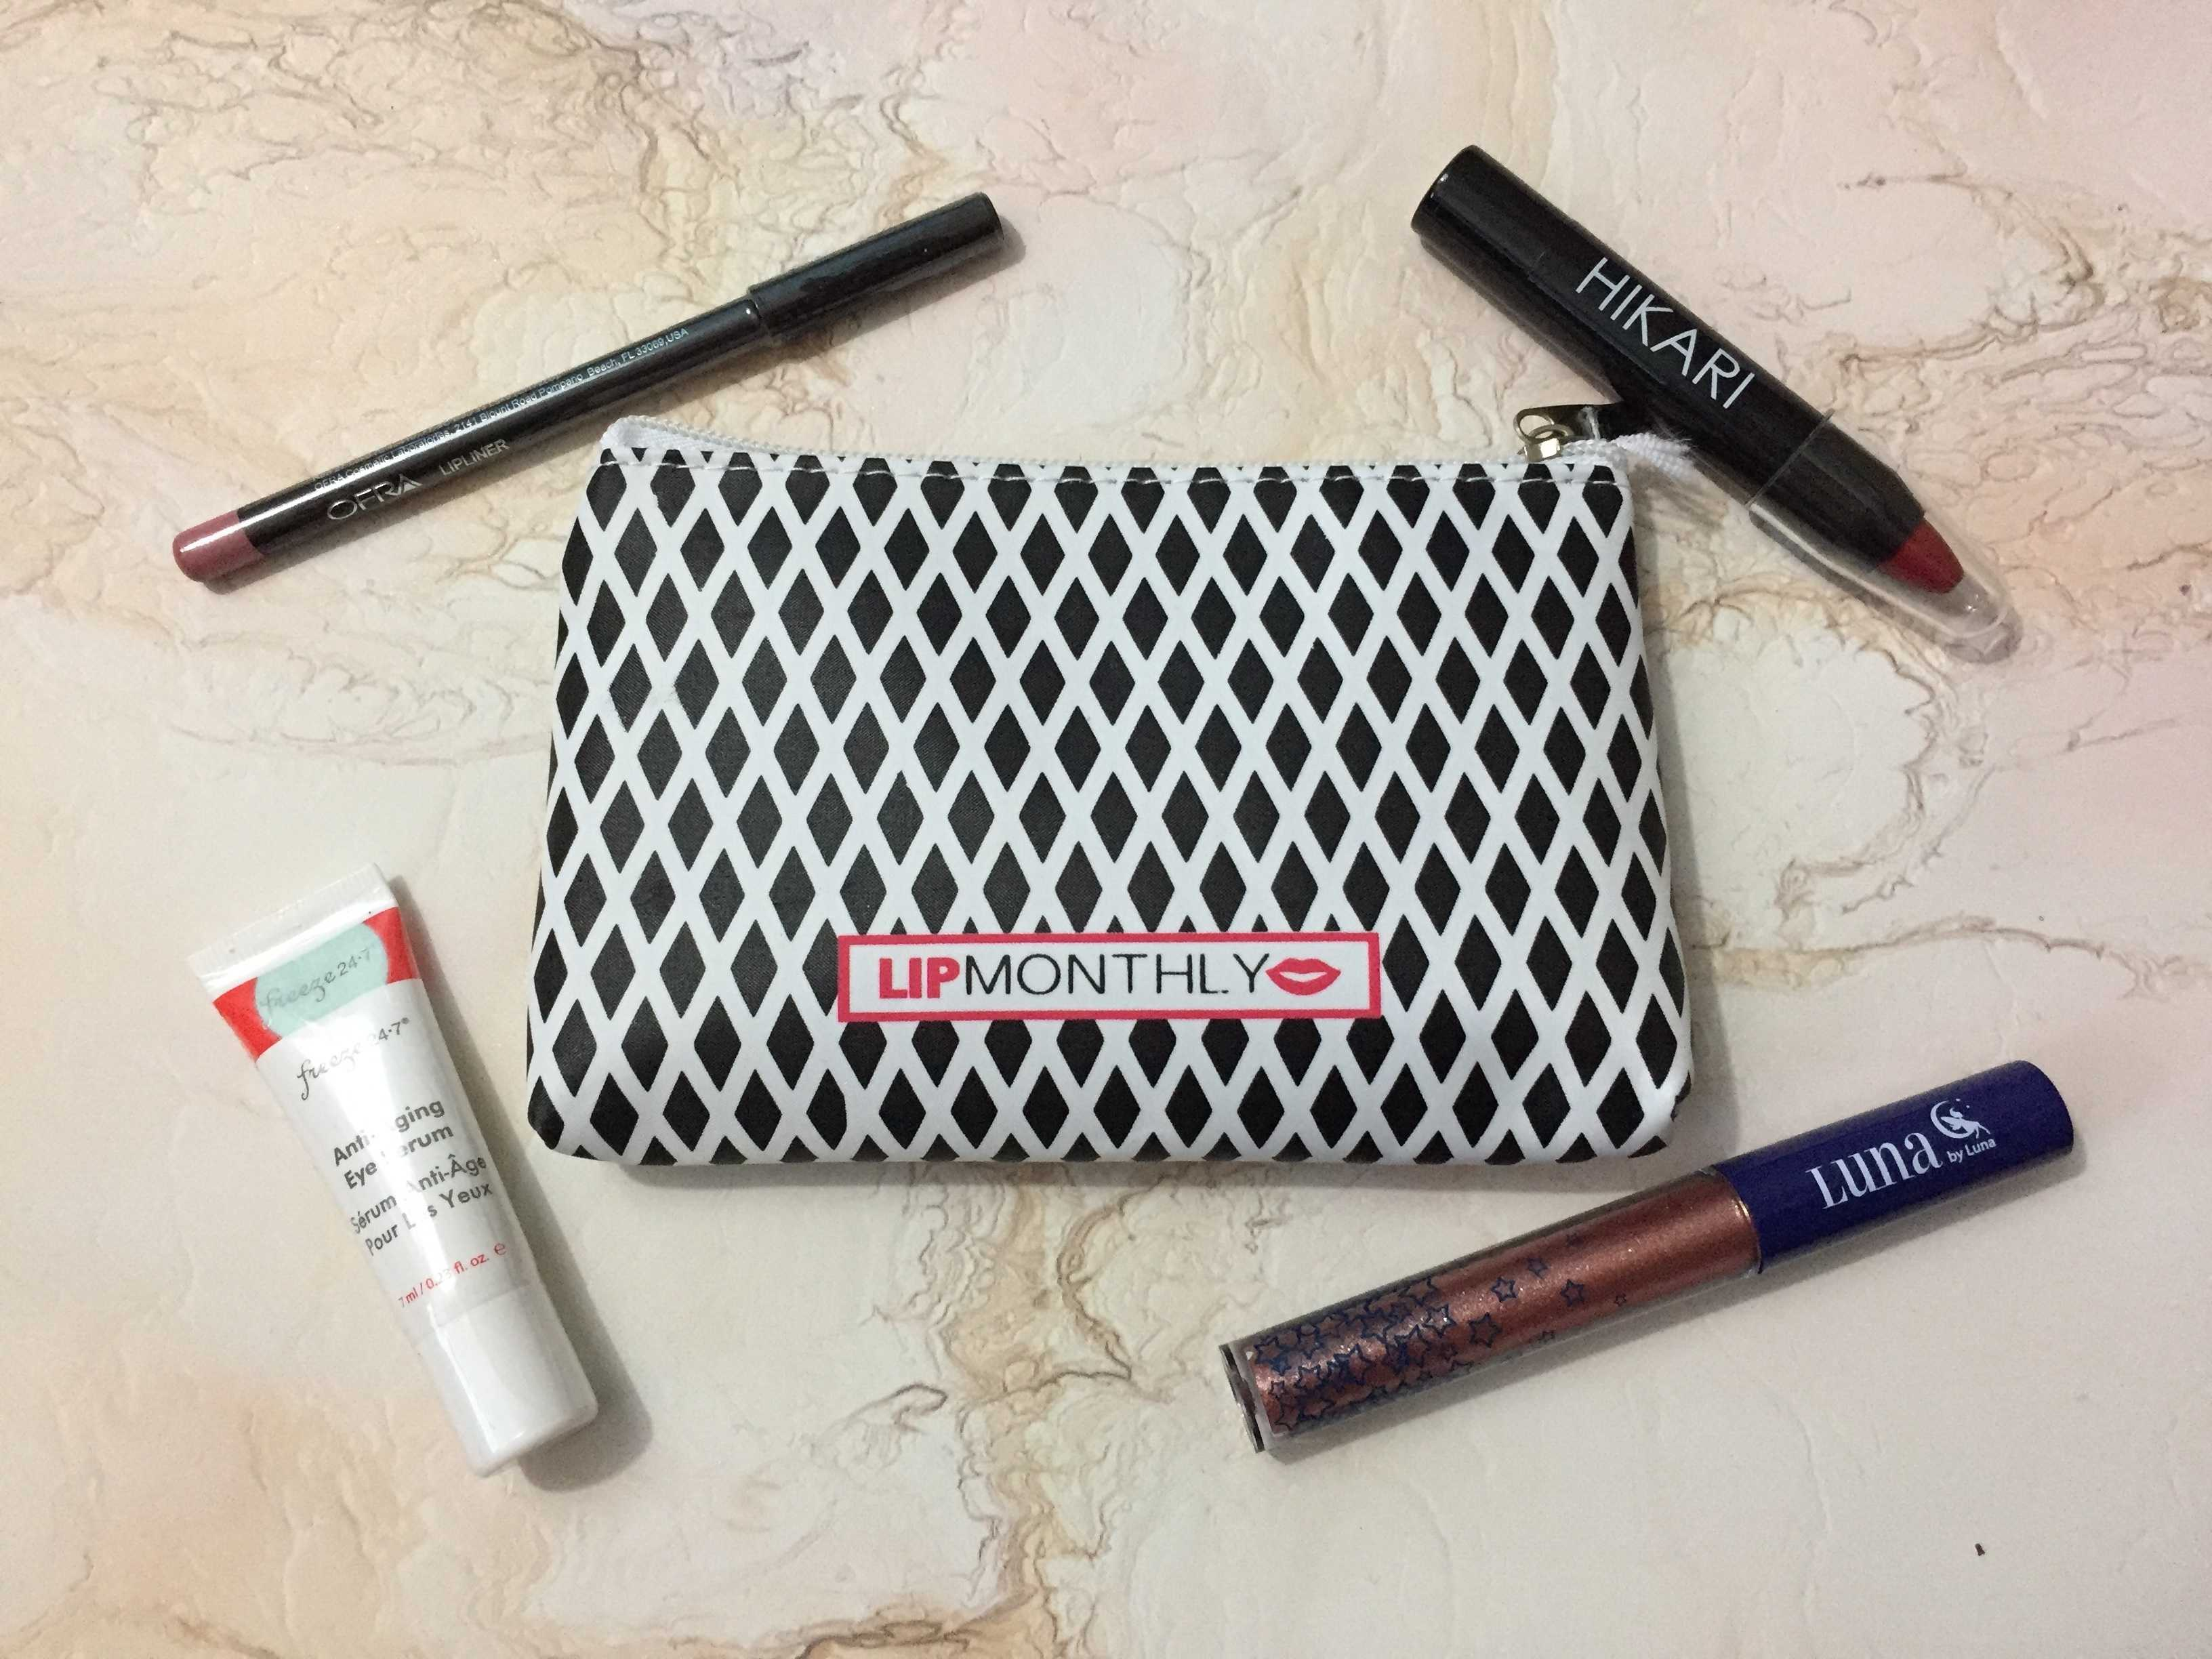 Lip Monthly November 2016 Subscription Box Review & Coupon